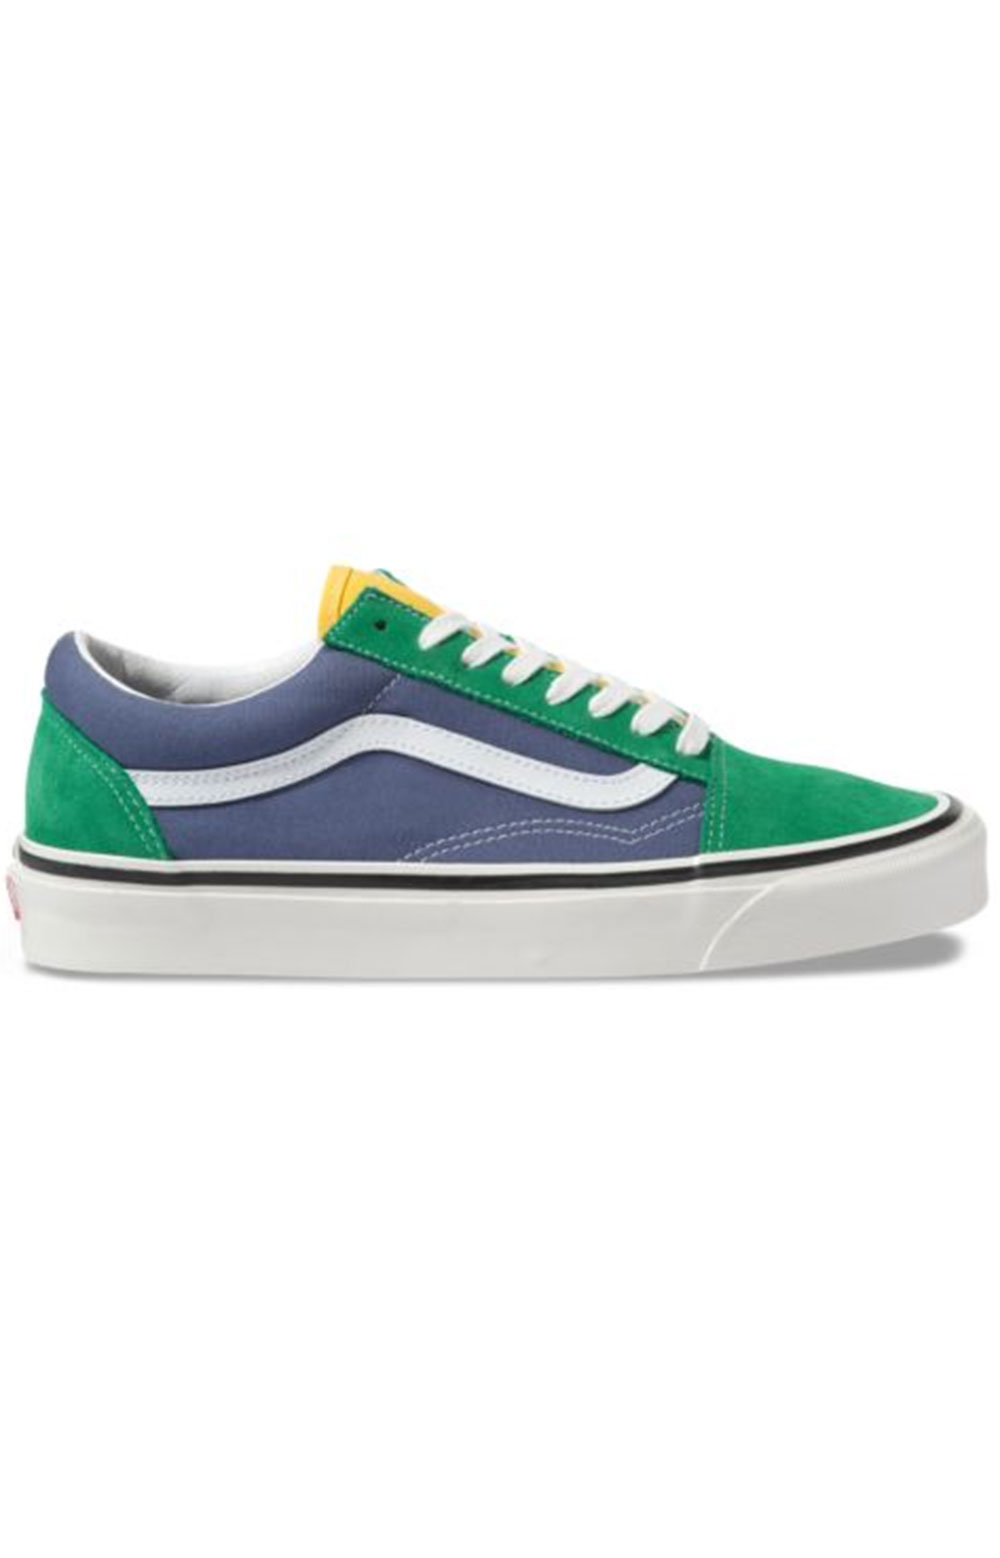 (8G2VZQ) Anaheim Factory Old Skool 36 DX Shoe - OG Emerald